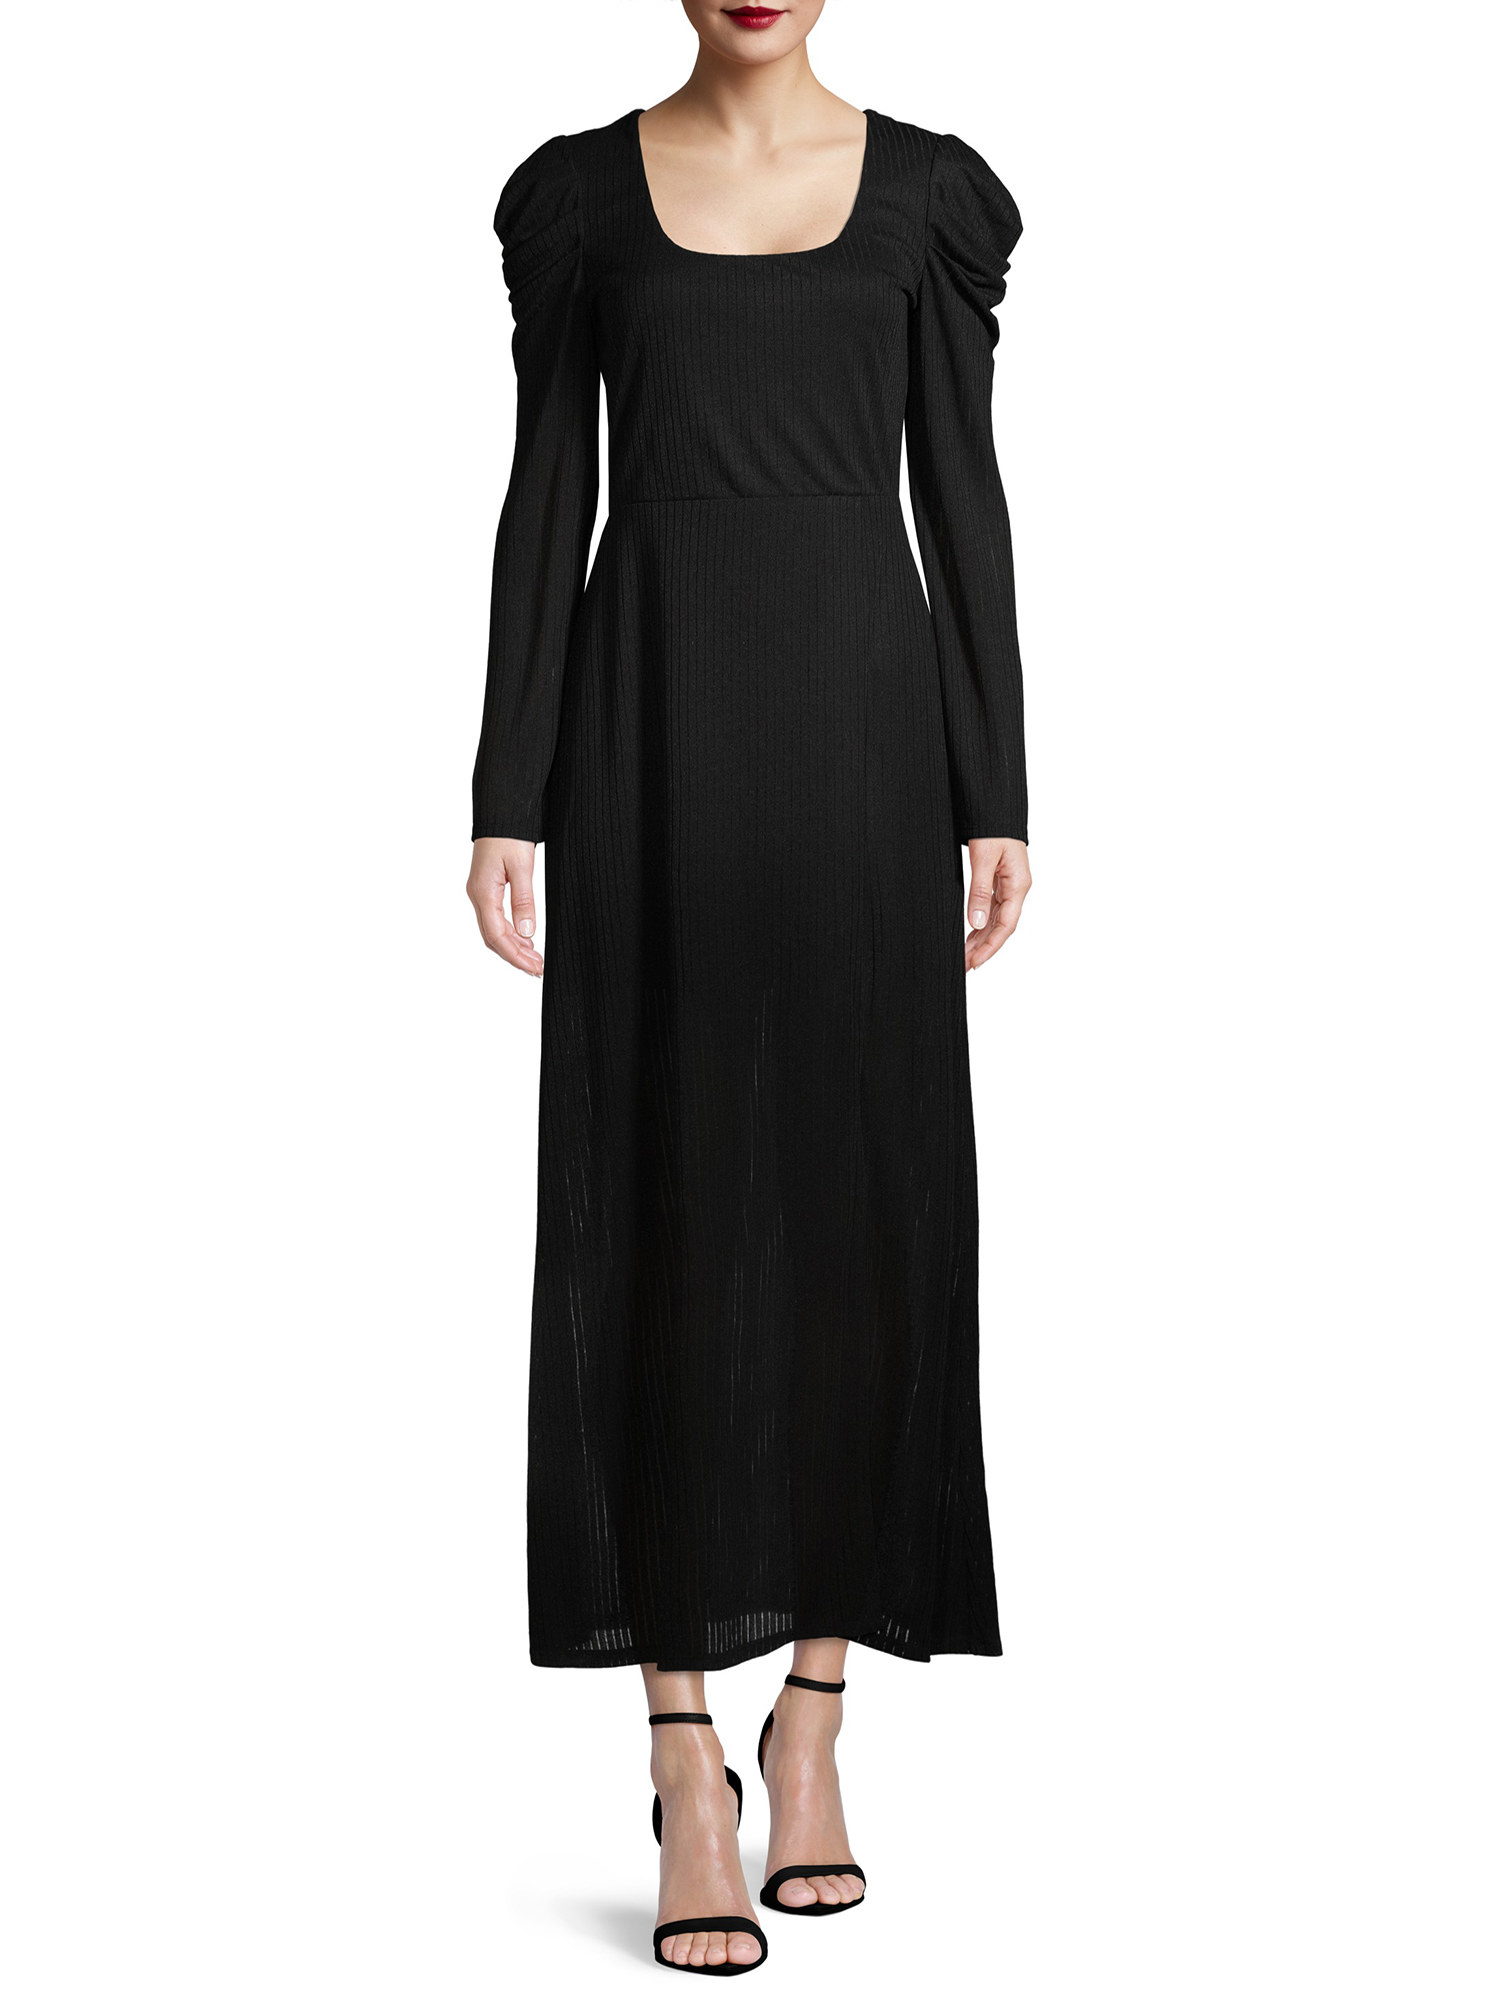 The black maxi dress